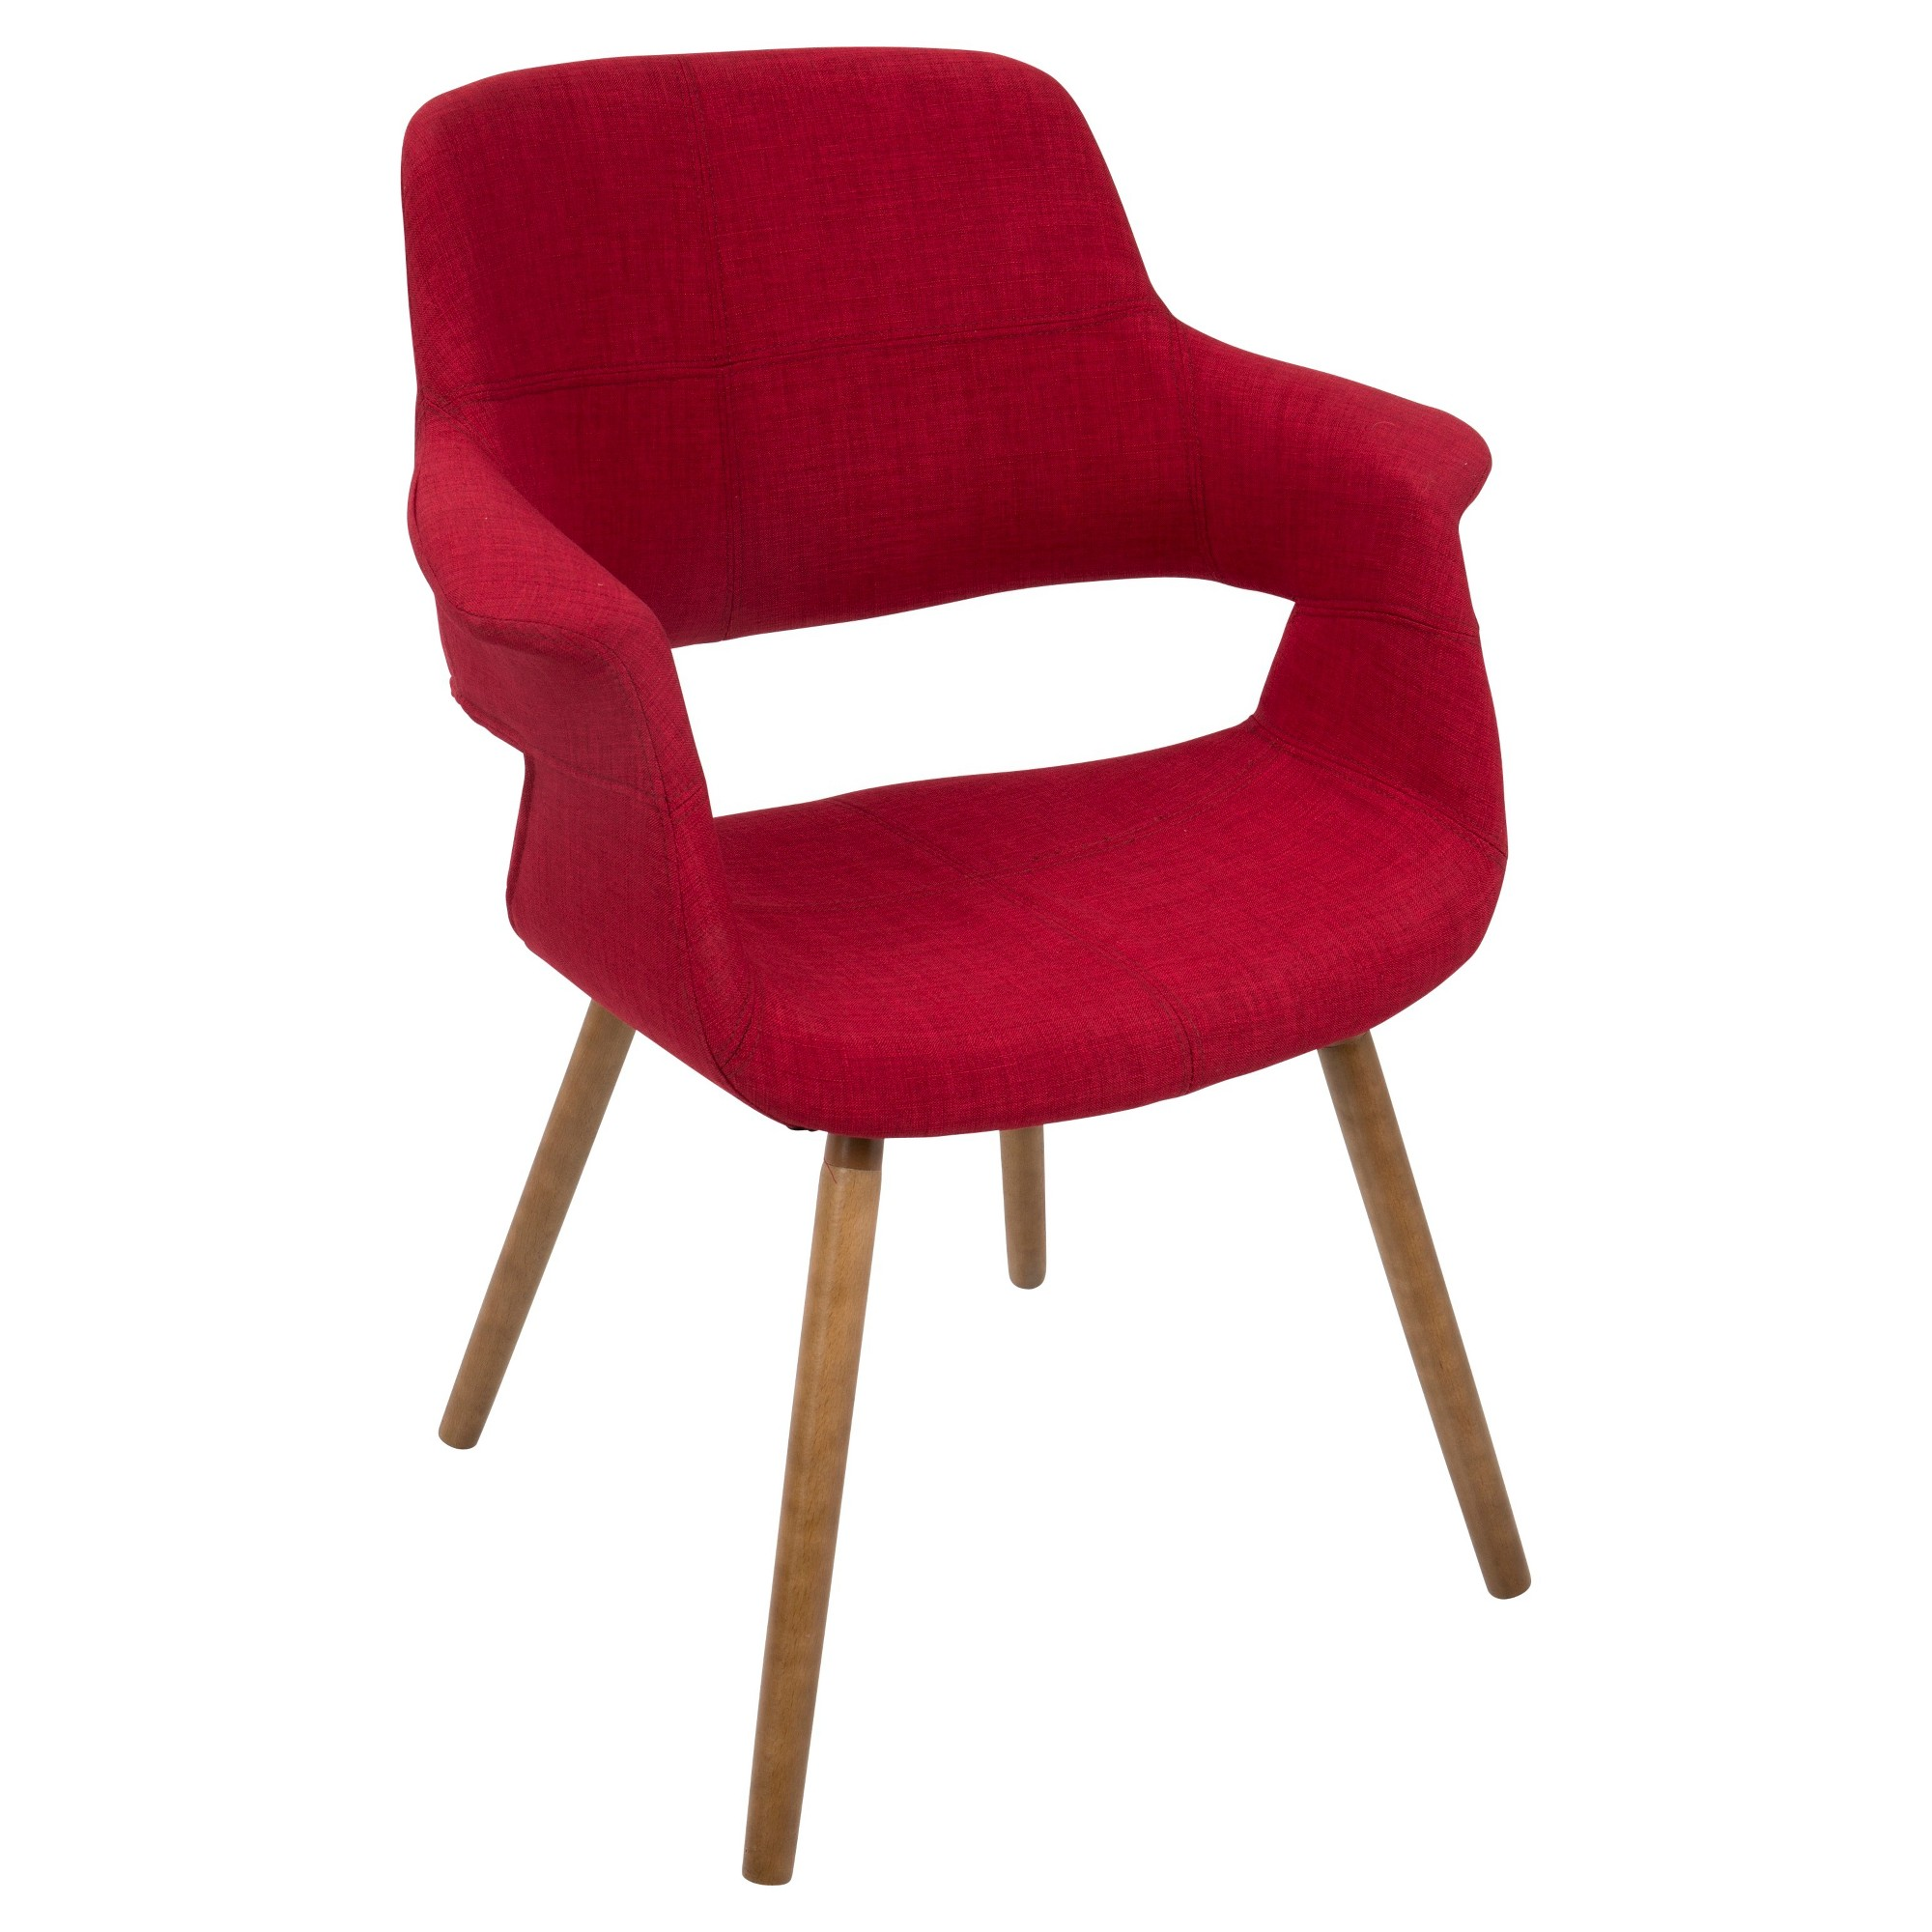 Cool Vintage Flair Mid Century Modern Chair Red Lumisource Beatyapartments Chair Design Images Beatyapartmentscom